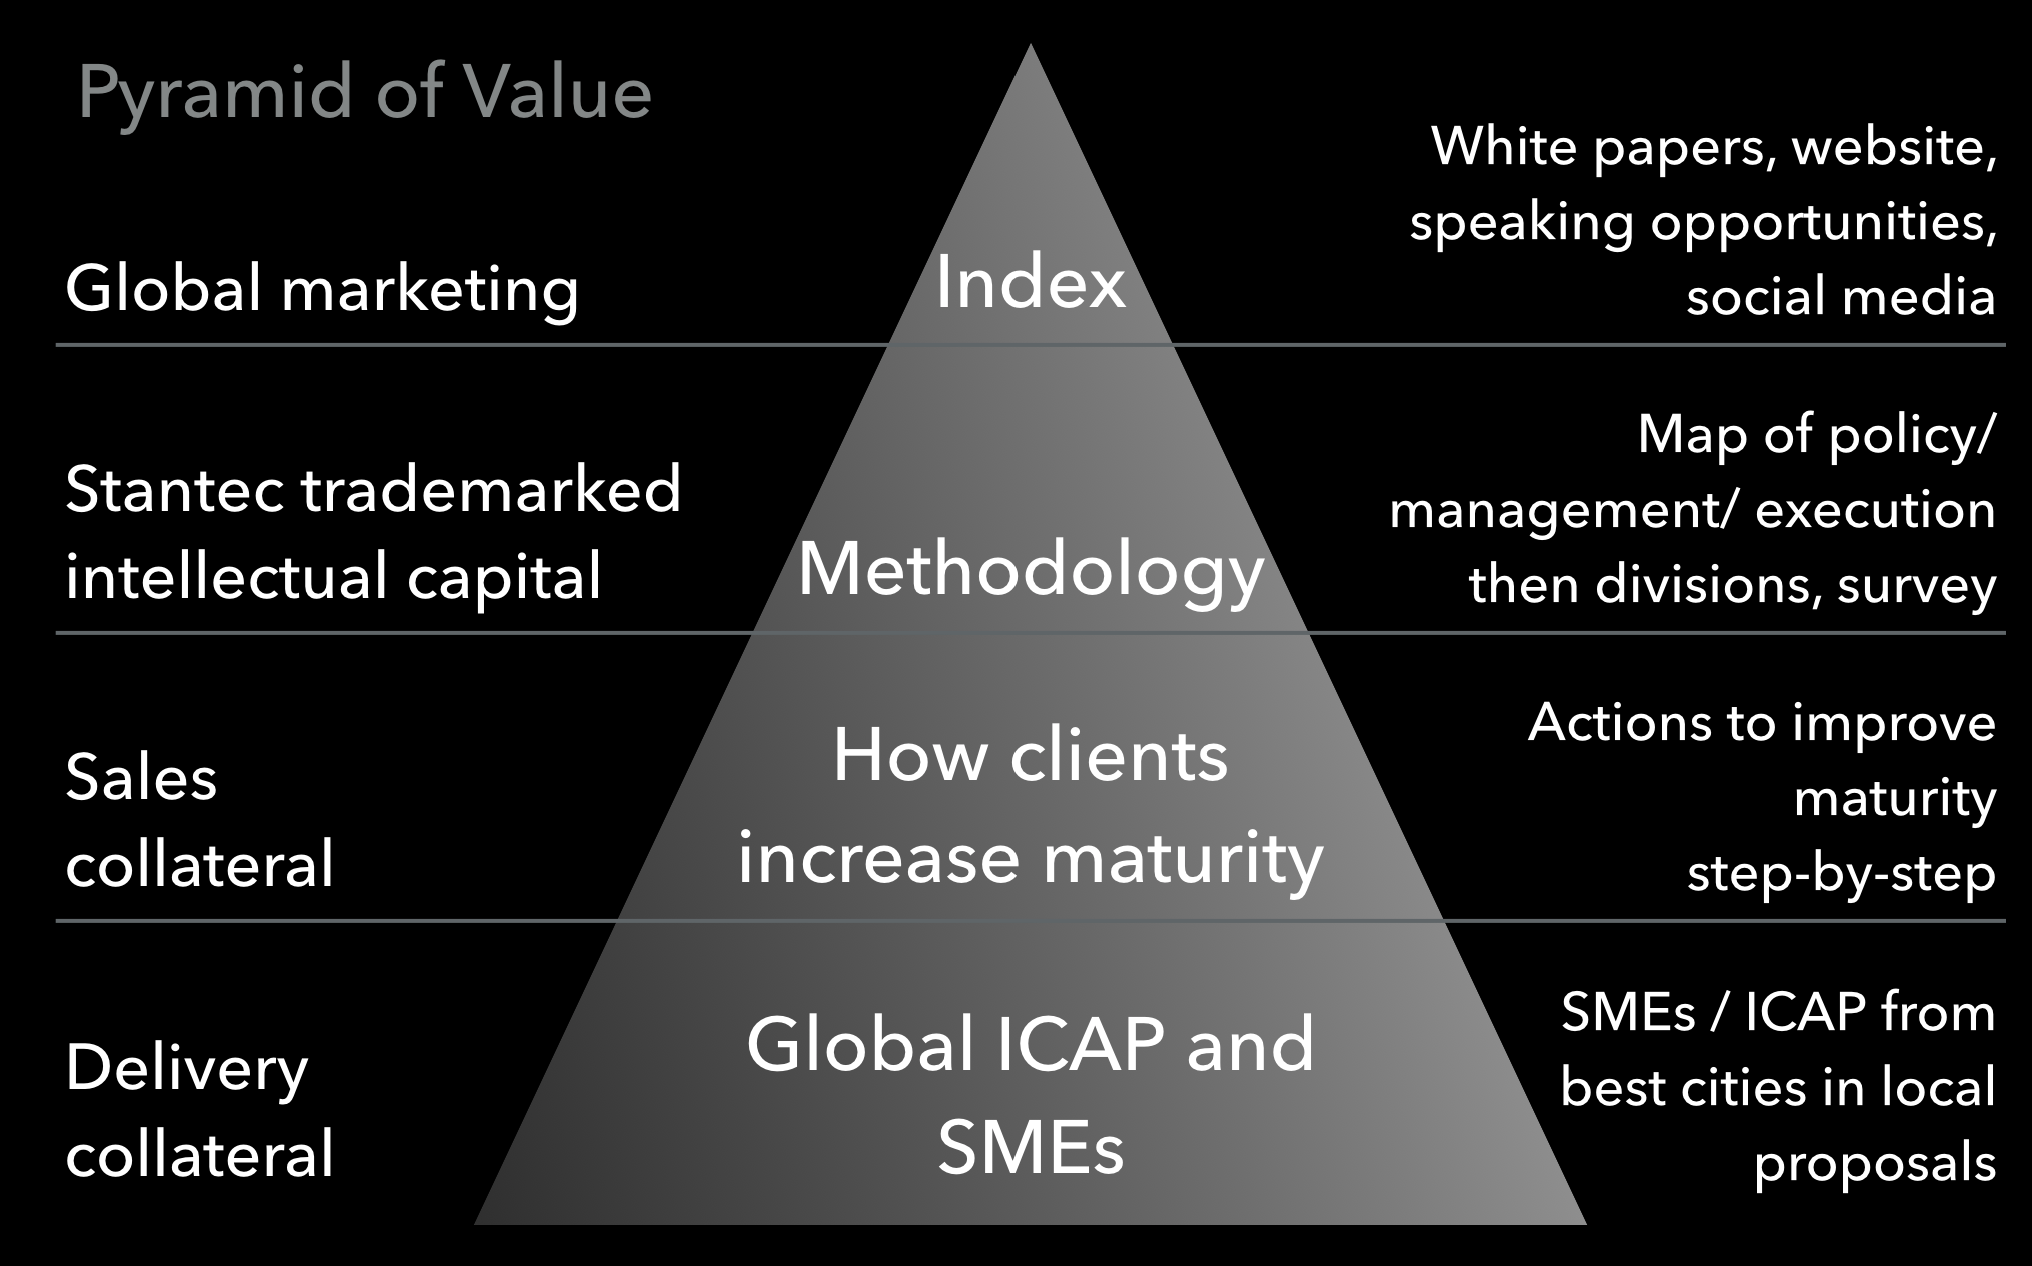 Multilevel value proposition for global consulting company go-to-market approach